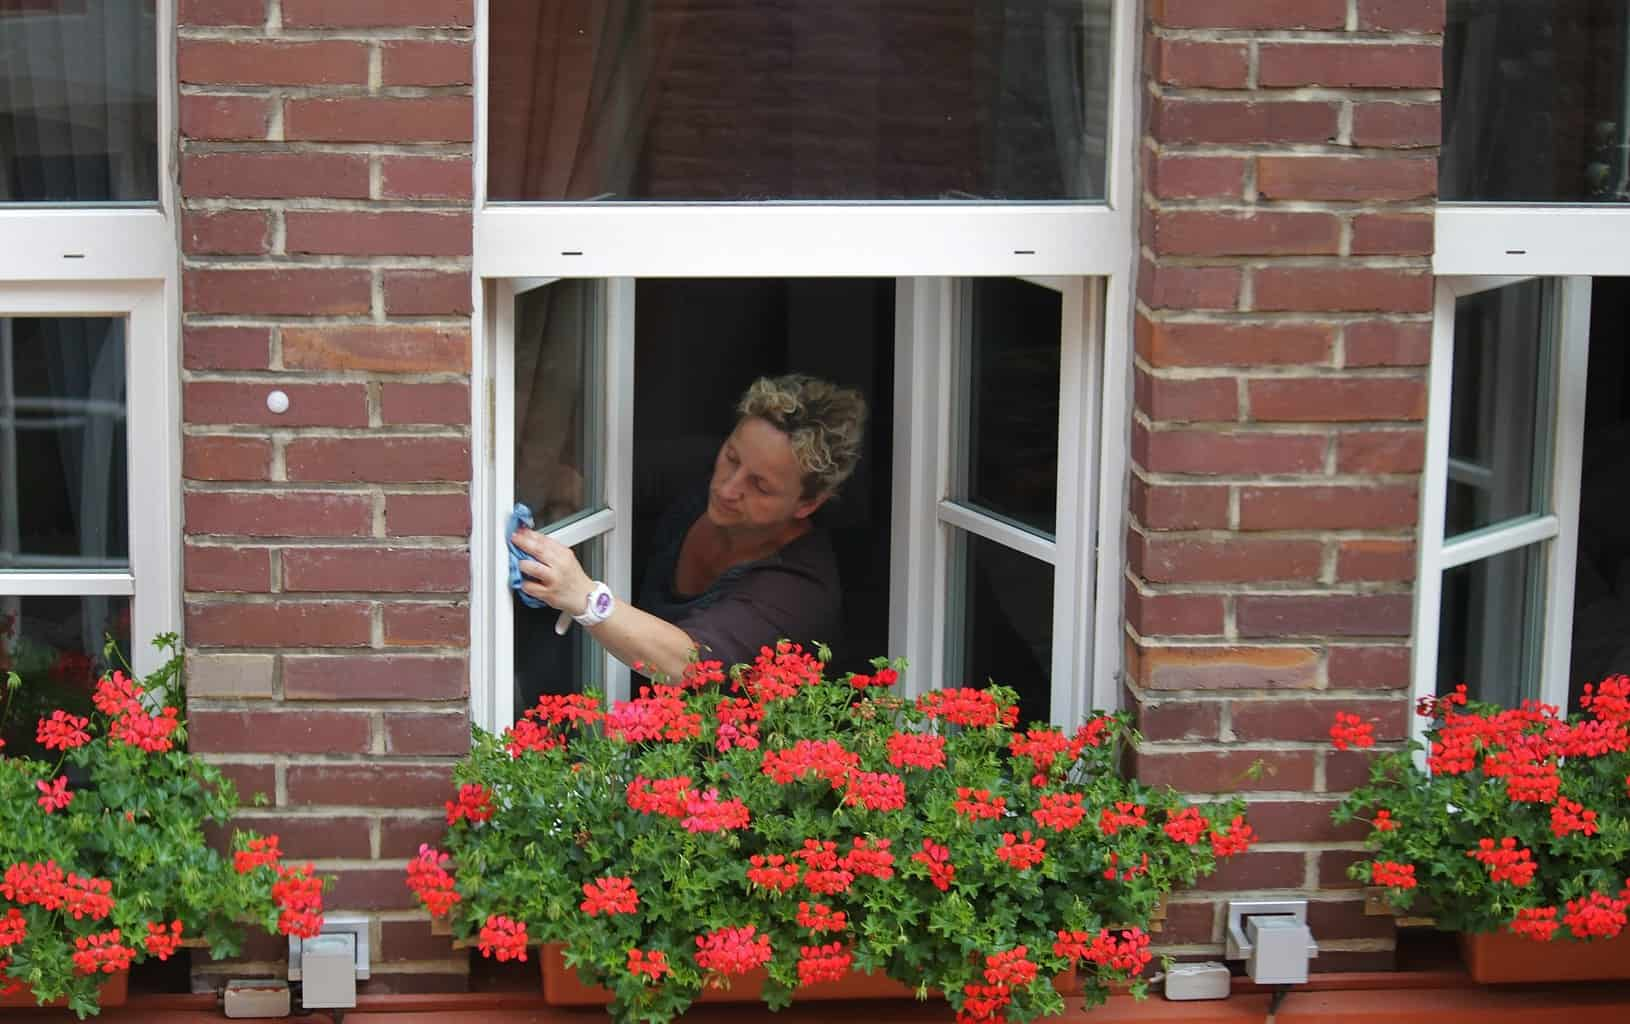 Woman trying to clean outside windows she can't reach